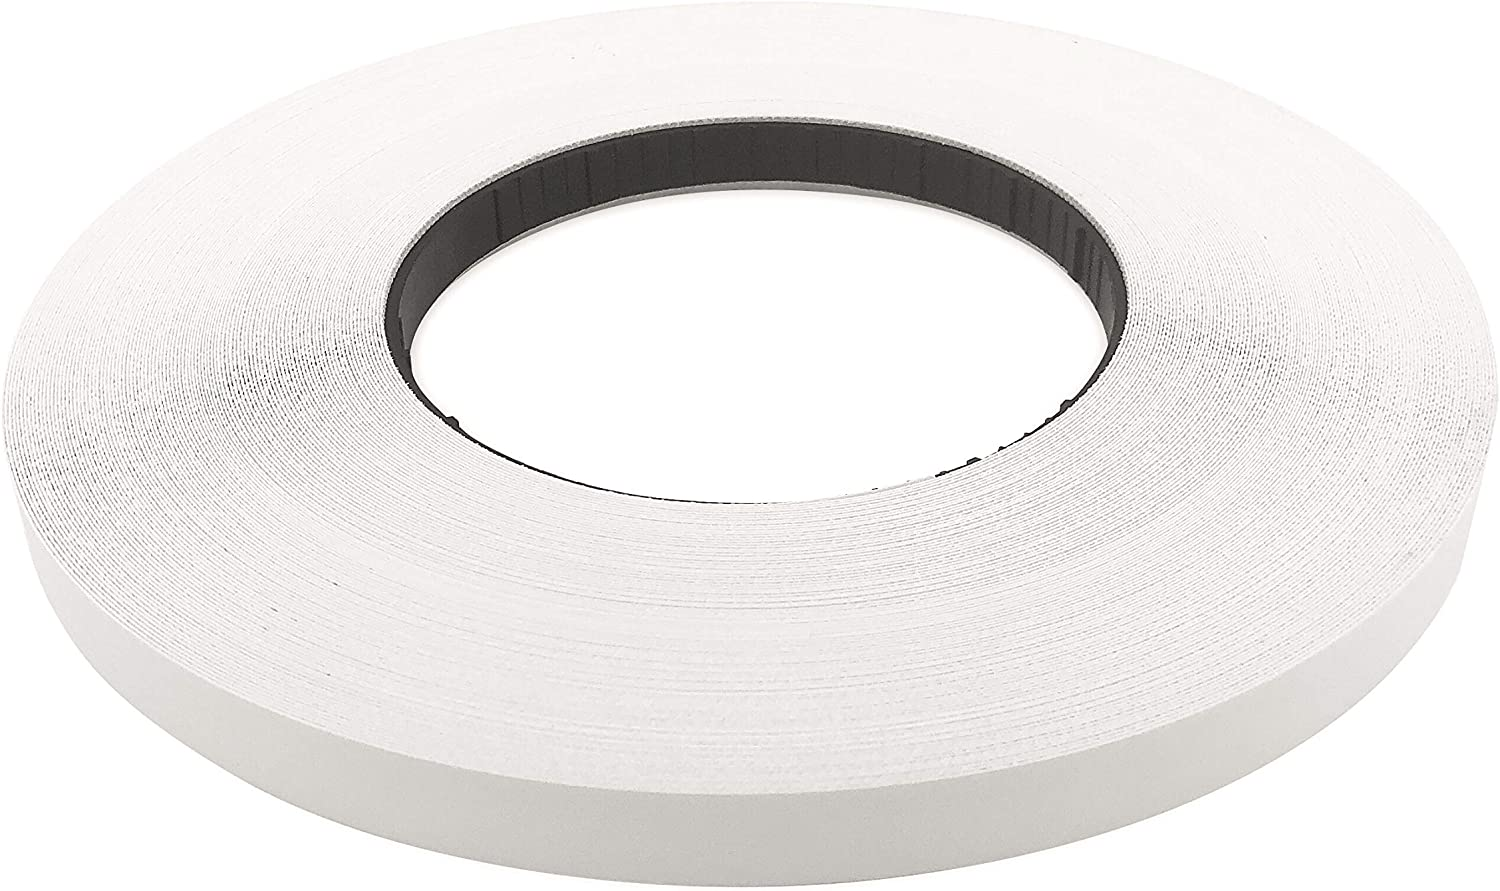 "Edge Supply White Melamine 7/8"" X 250' Roll Preglued, White Edge Banding, Flexible White Tape, Easy Application Iron On with Hot Melt Adhesive. Smooth Finish White Melamine Edging. Made in USA."